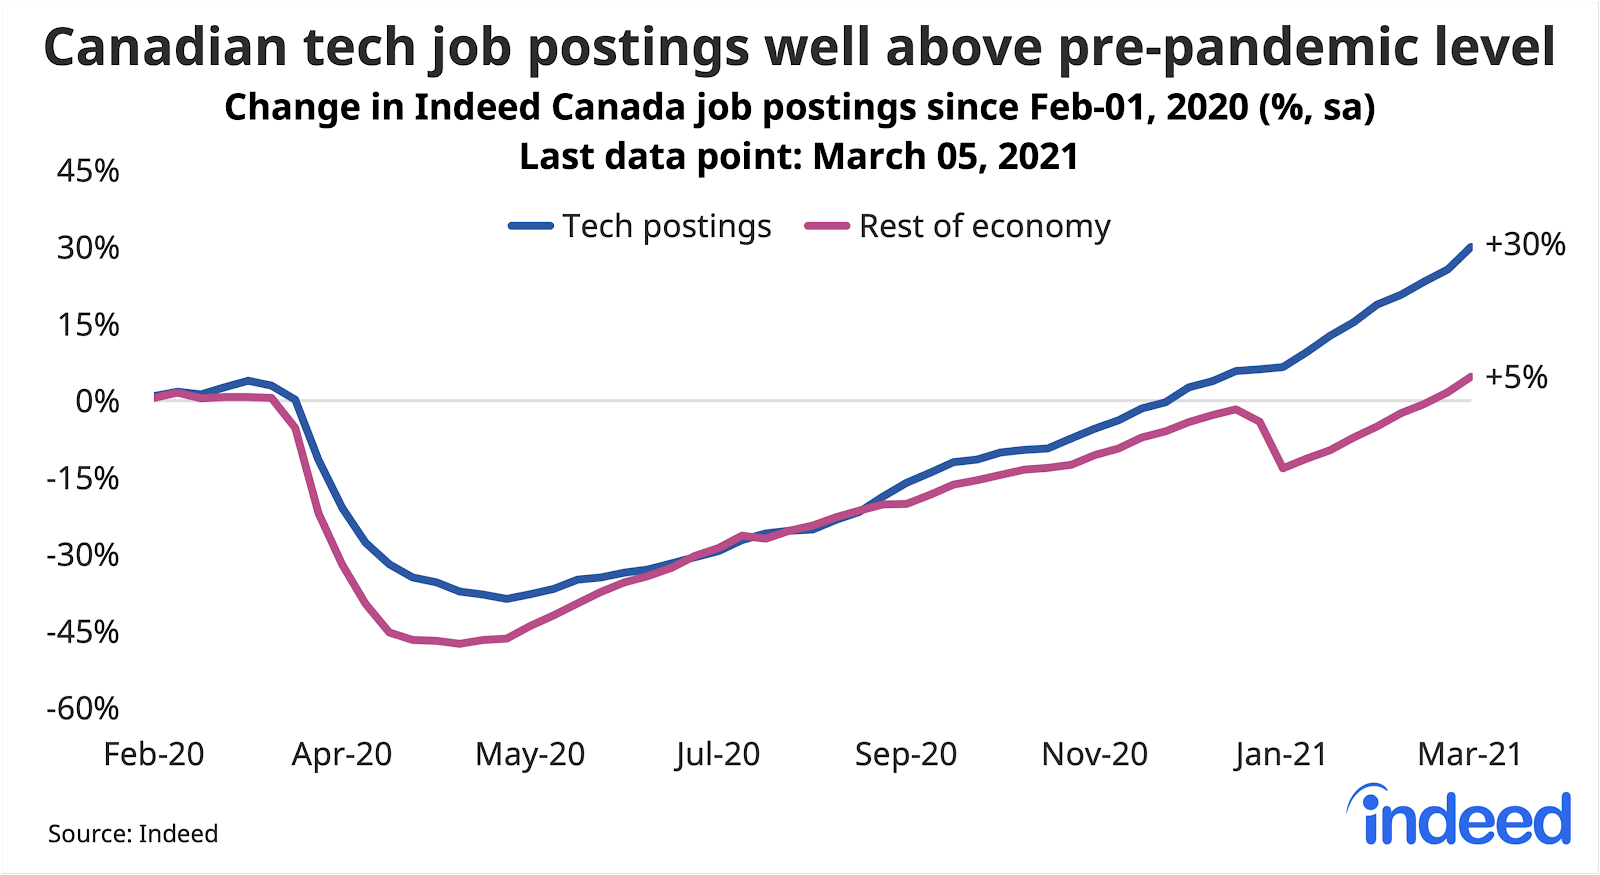 Line graph showing canadian tech job postings well above pre-pandemic levels